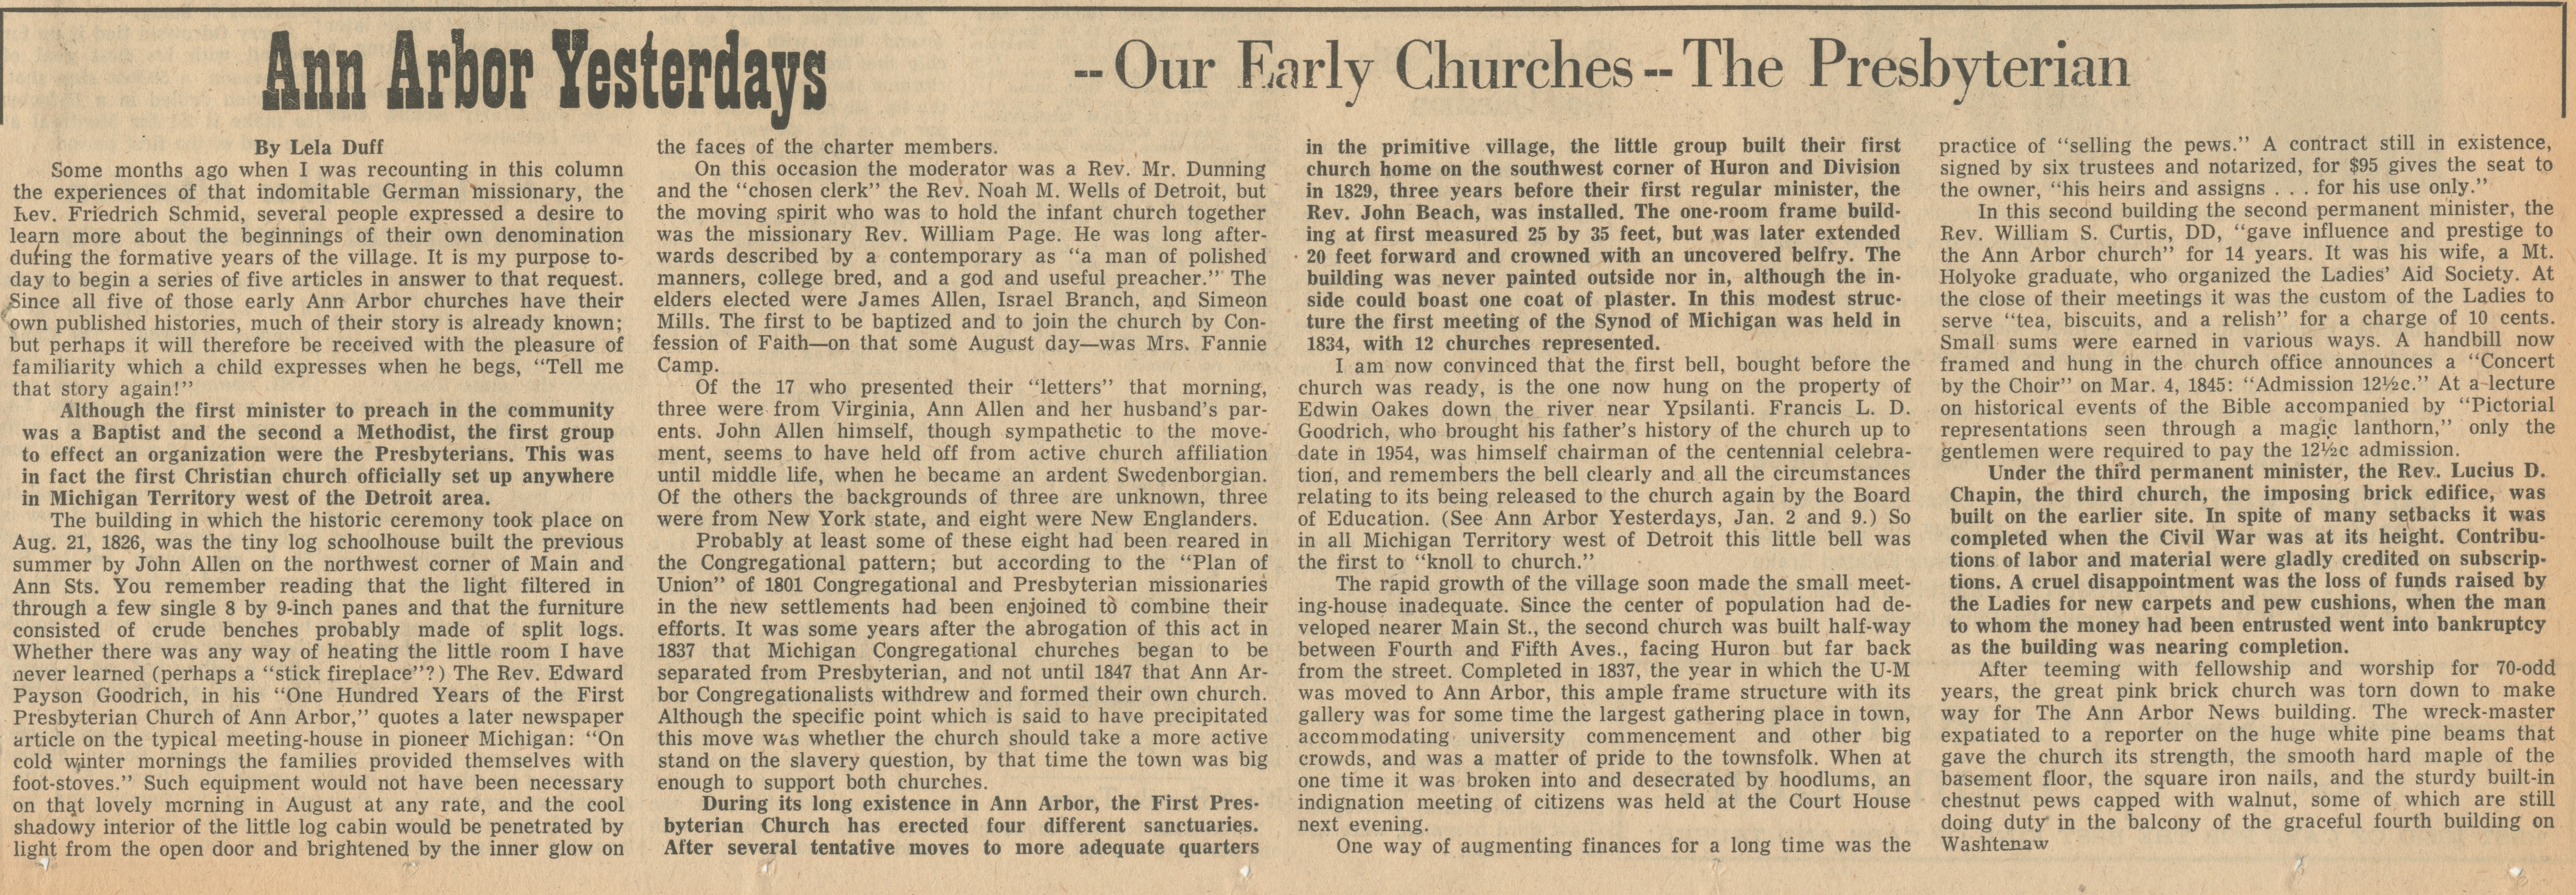 Ann Arbor Yesterdays ~ Our Early Churches -- The Presbyterian image